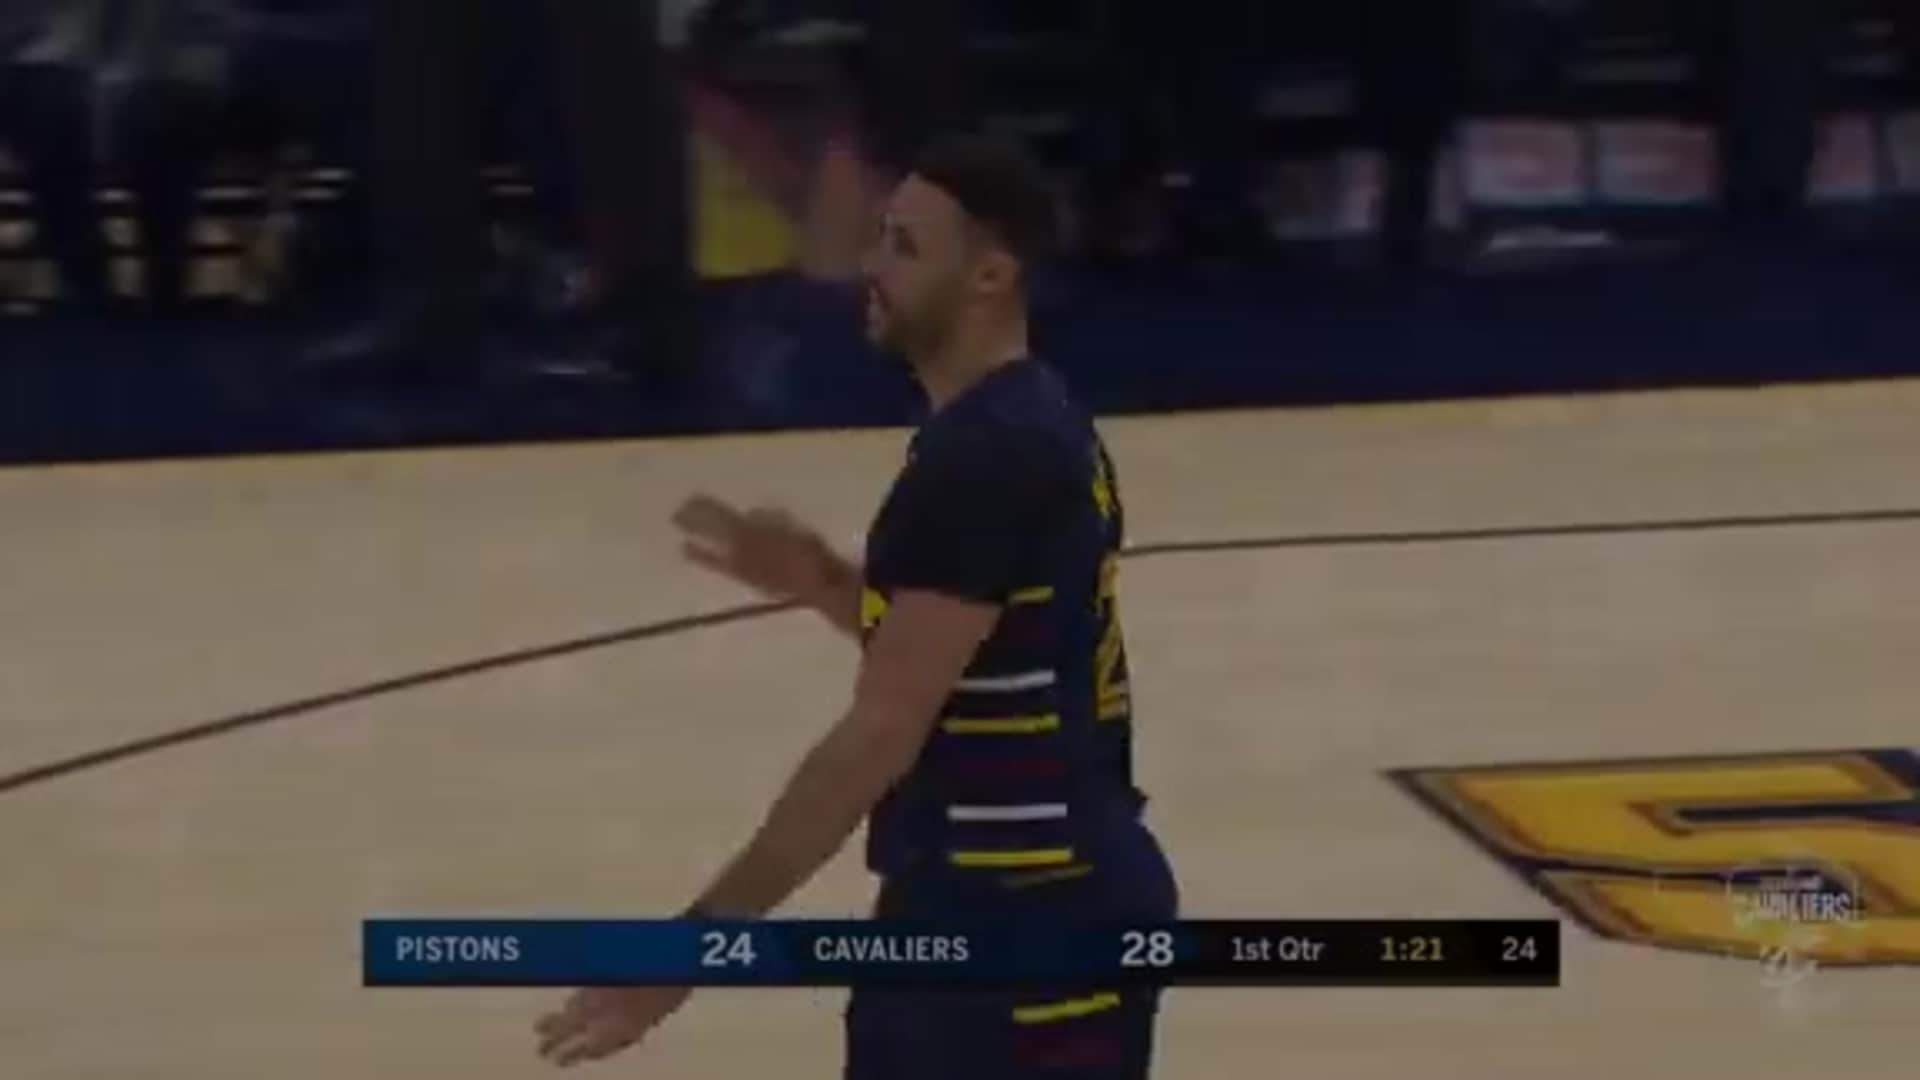 Sexton Goes Behind-the-Back to Assist on a Nance, Jr. Three